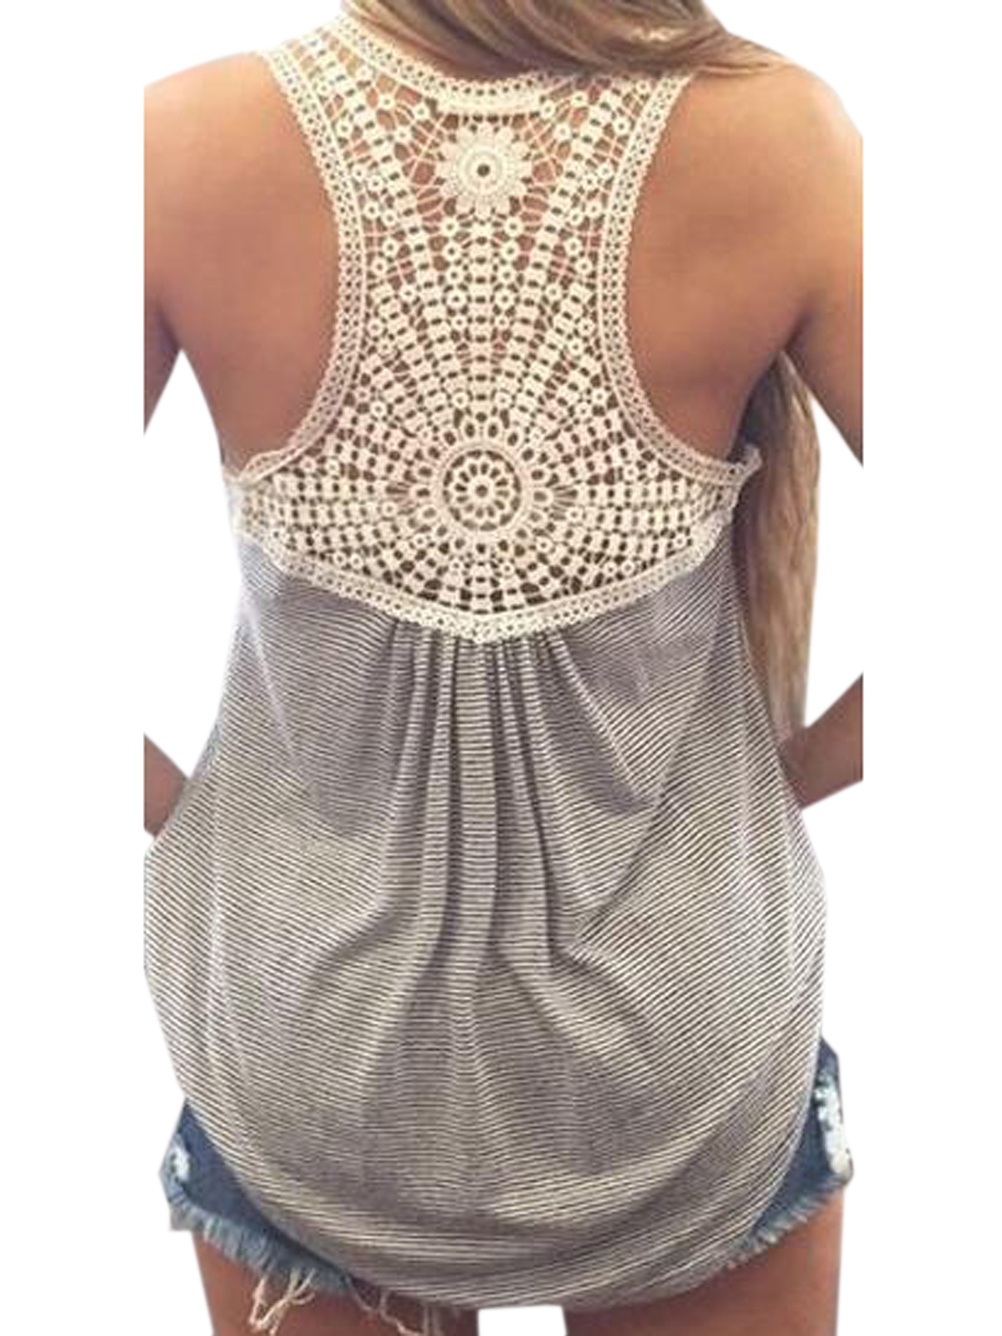 Free Crochet Patterns Women s Tank Tops : Back Crochet Lace Floral Pattern Grey Tank Top Women Vest ...